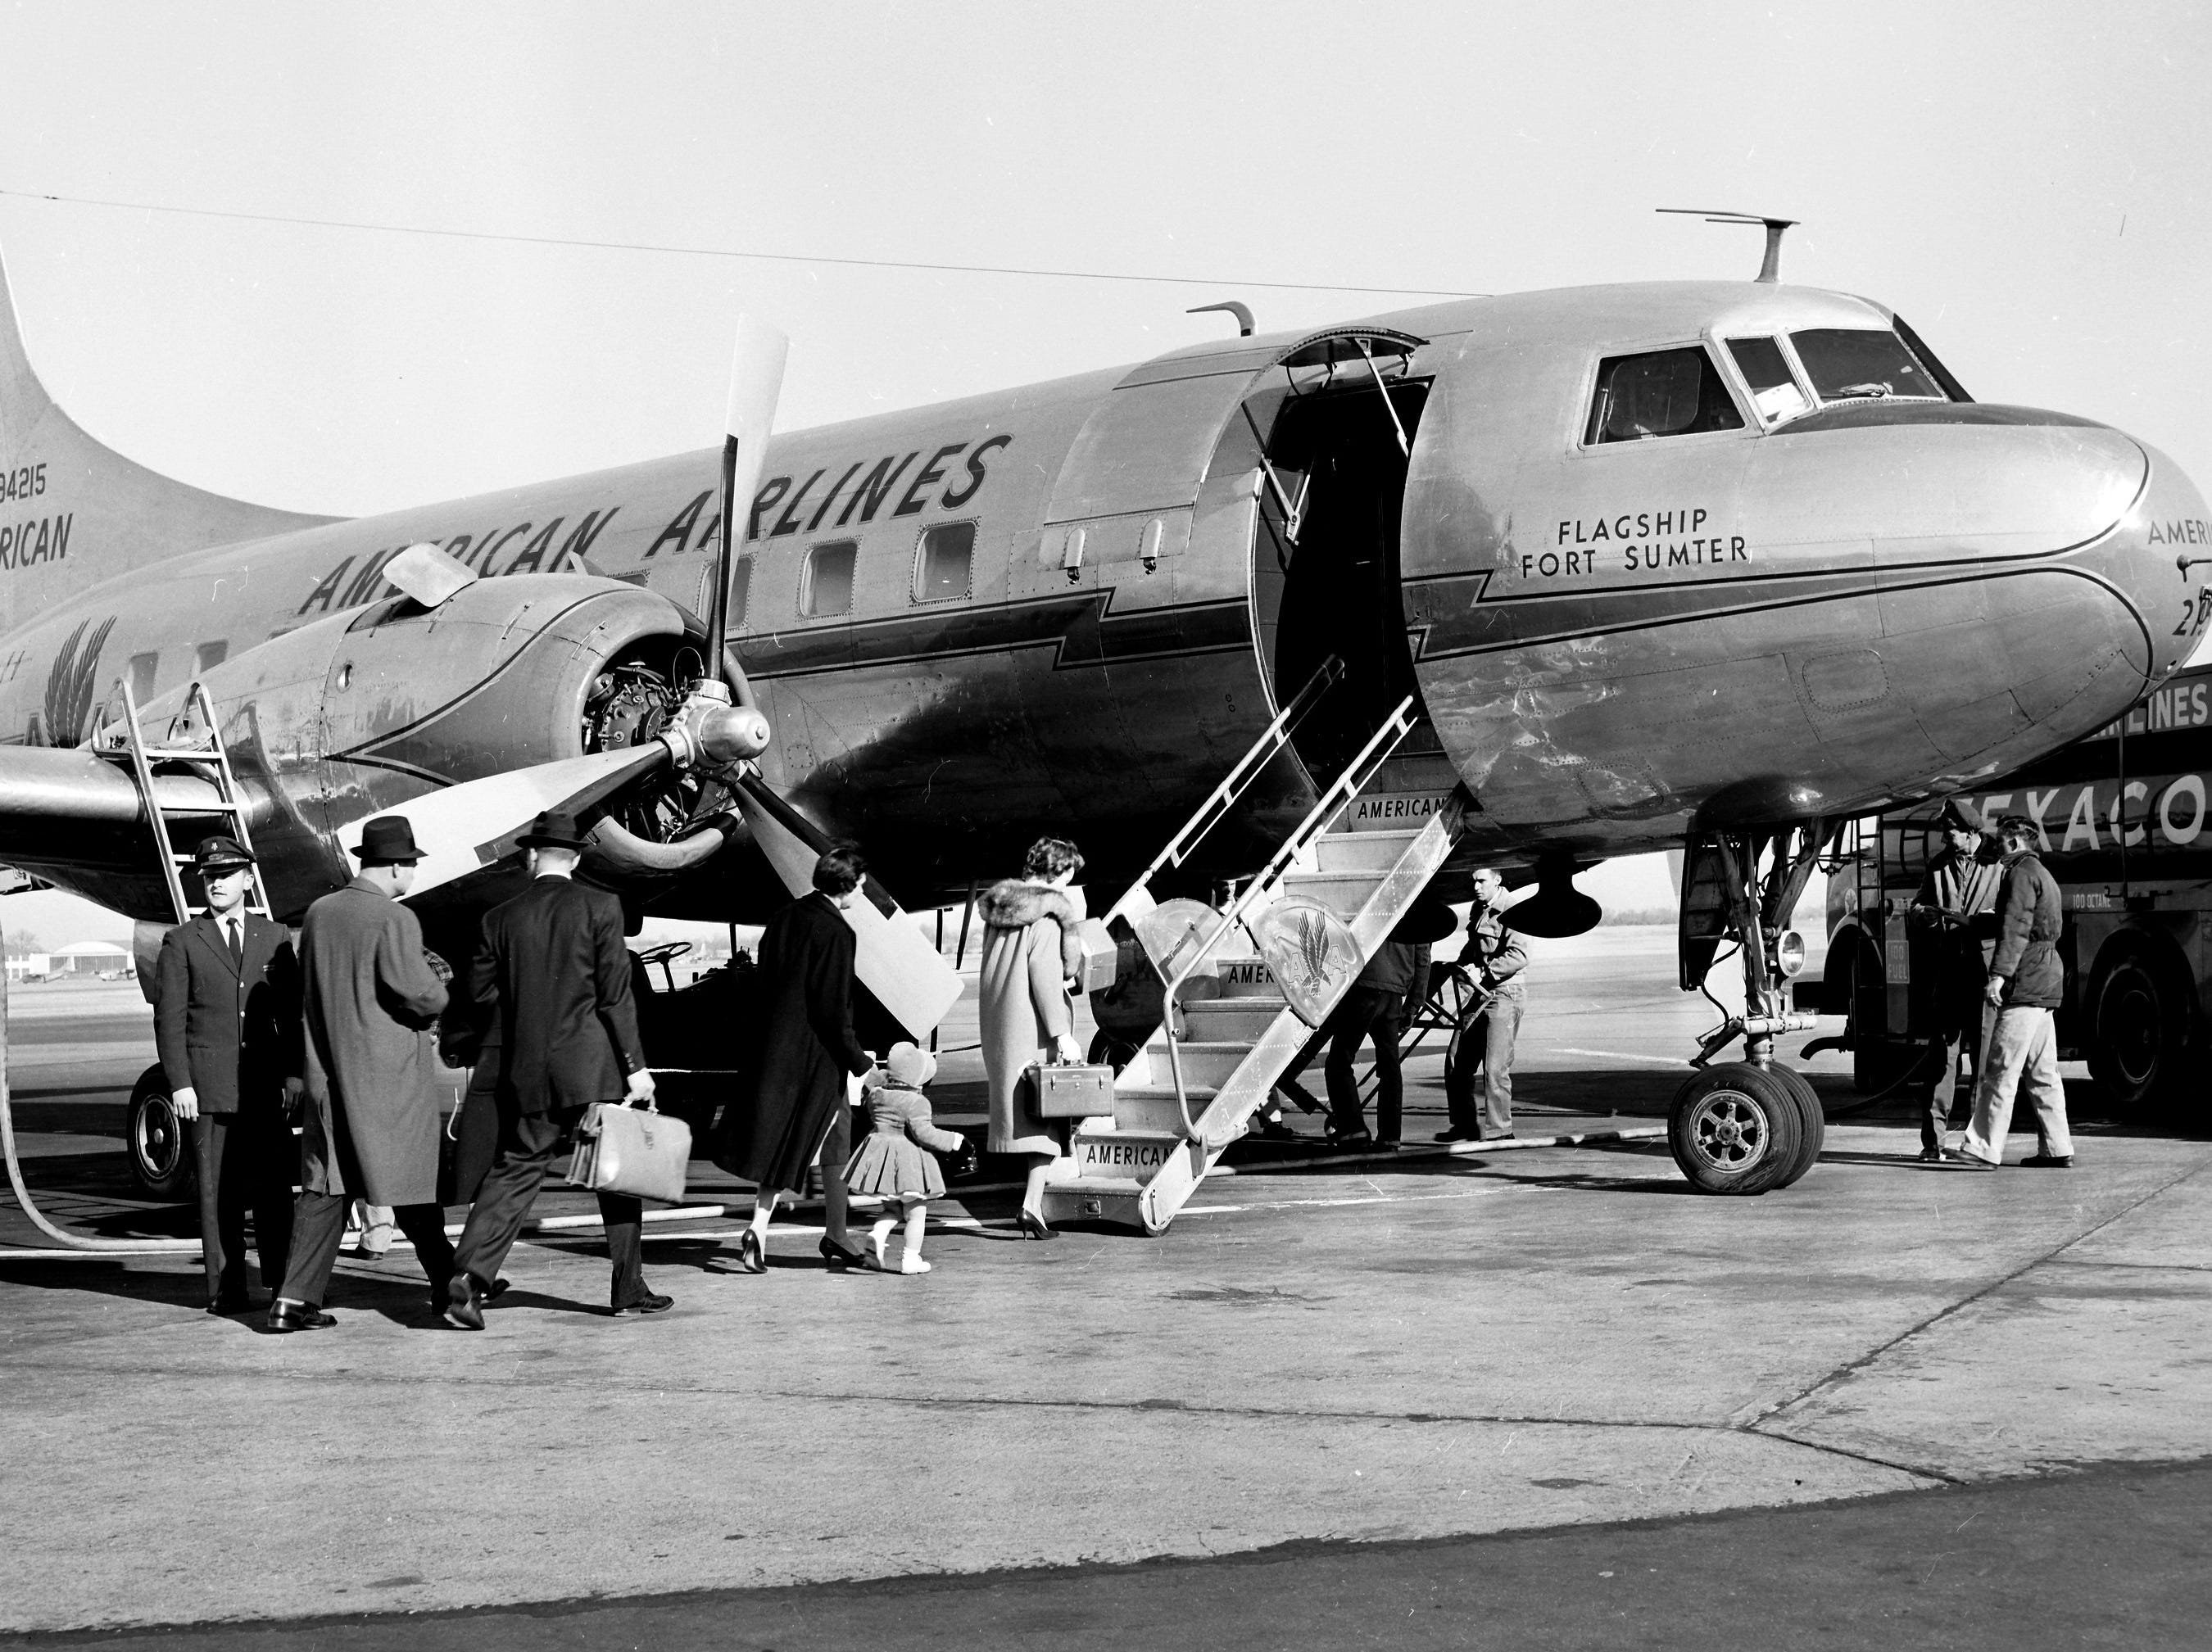 Passengers board the first American Airlines plane to arrive in Memphis in 22 days on 11 Jan 1959, shortly after New York-to-Dallas Flight 405 landed at Municipal Airport.  American's pilots have ended their strike which tied up air travel and idled thousands of the line's employees.